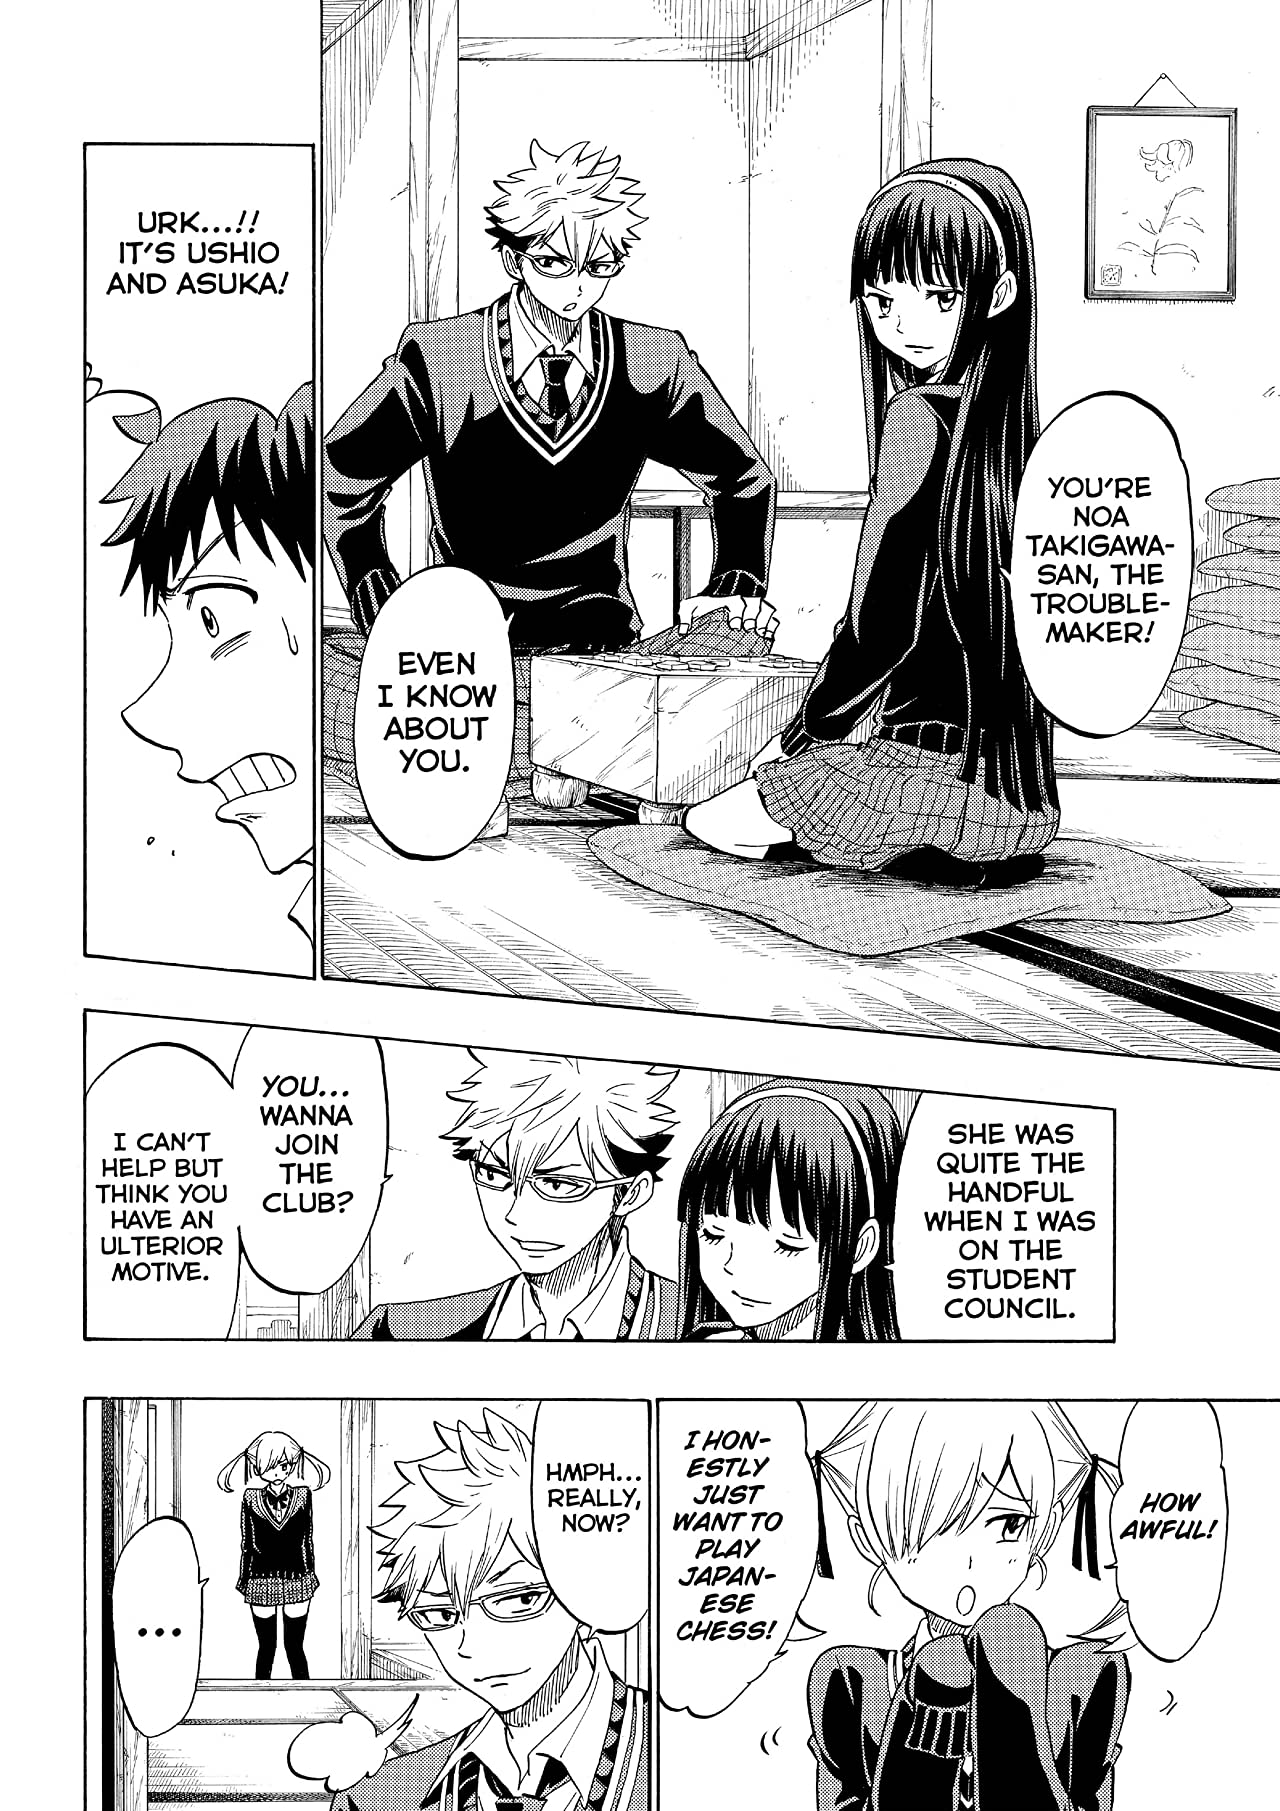 Yamada-kun and the Seven Witches #143